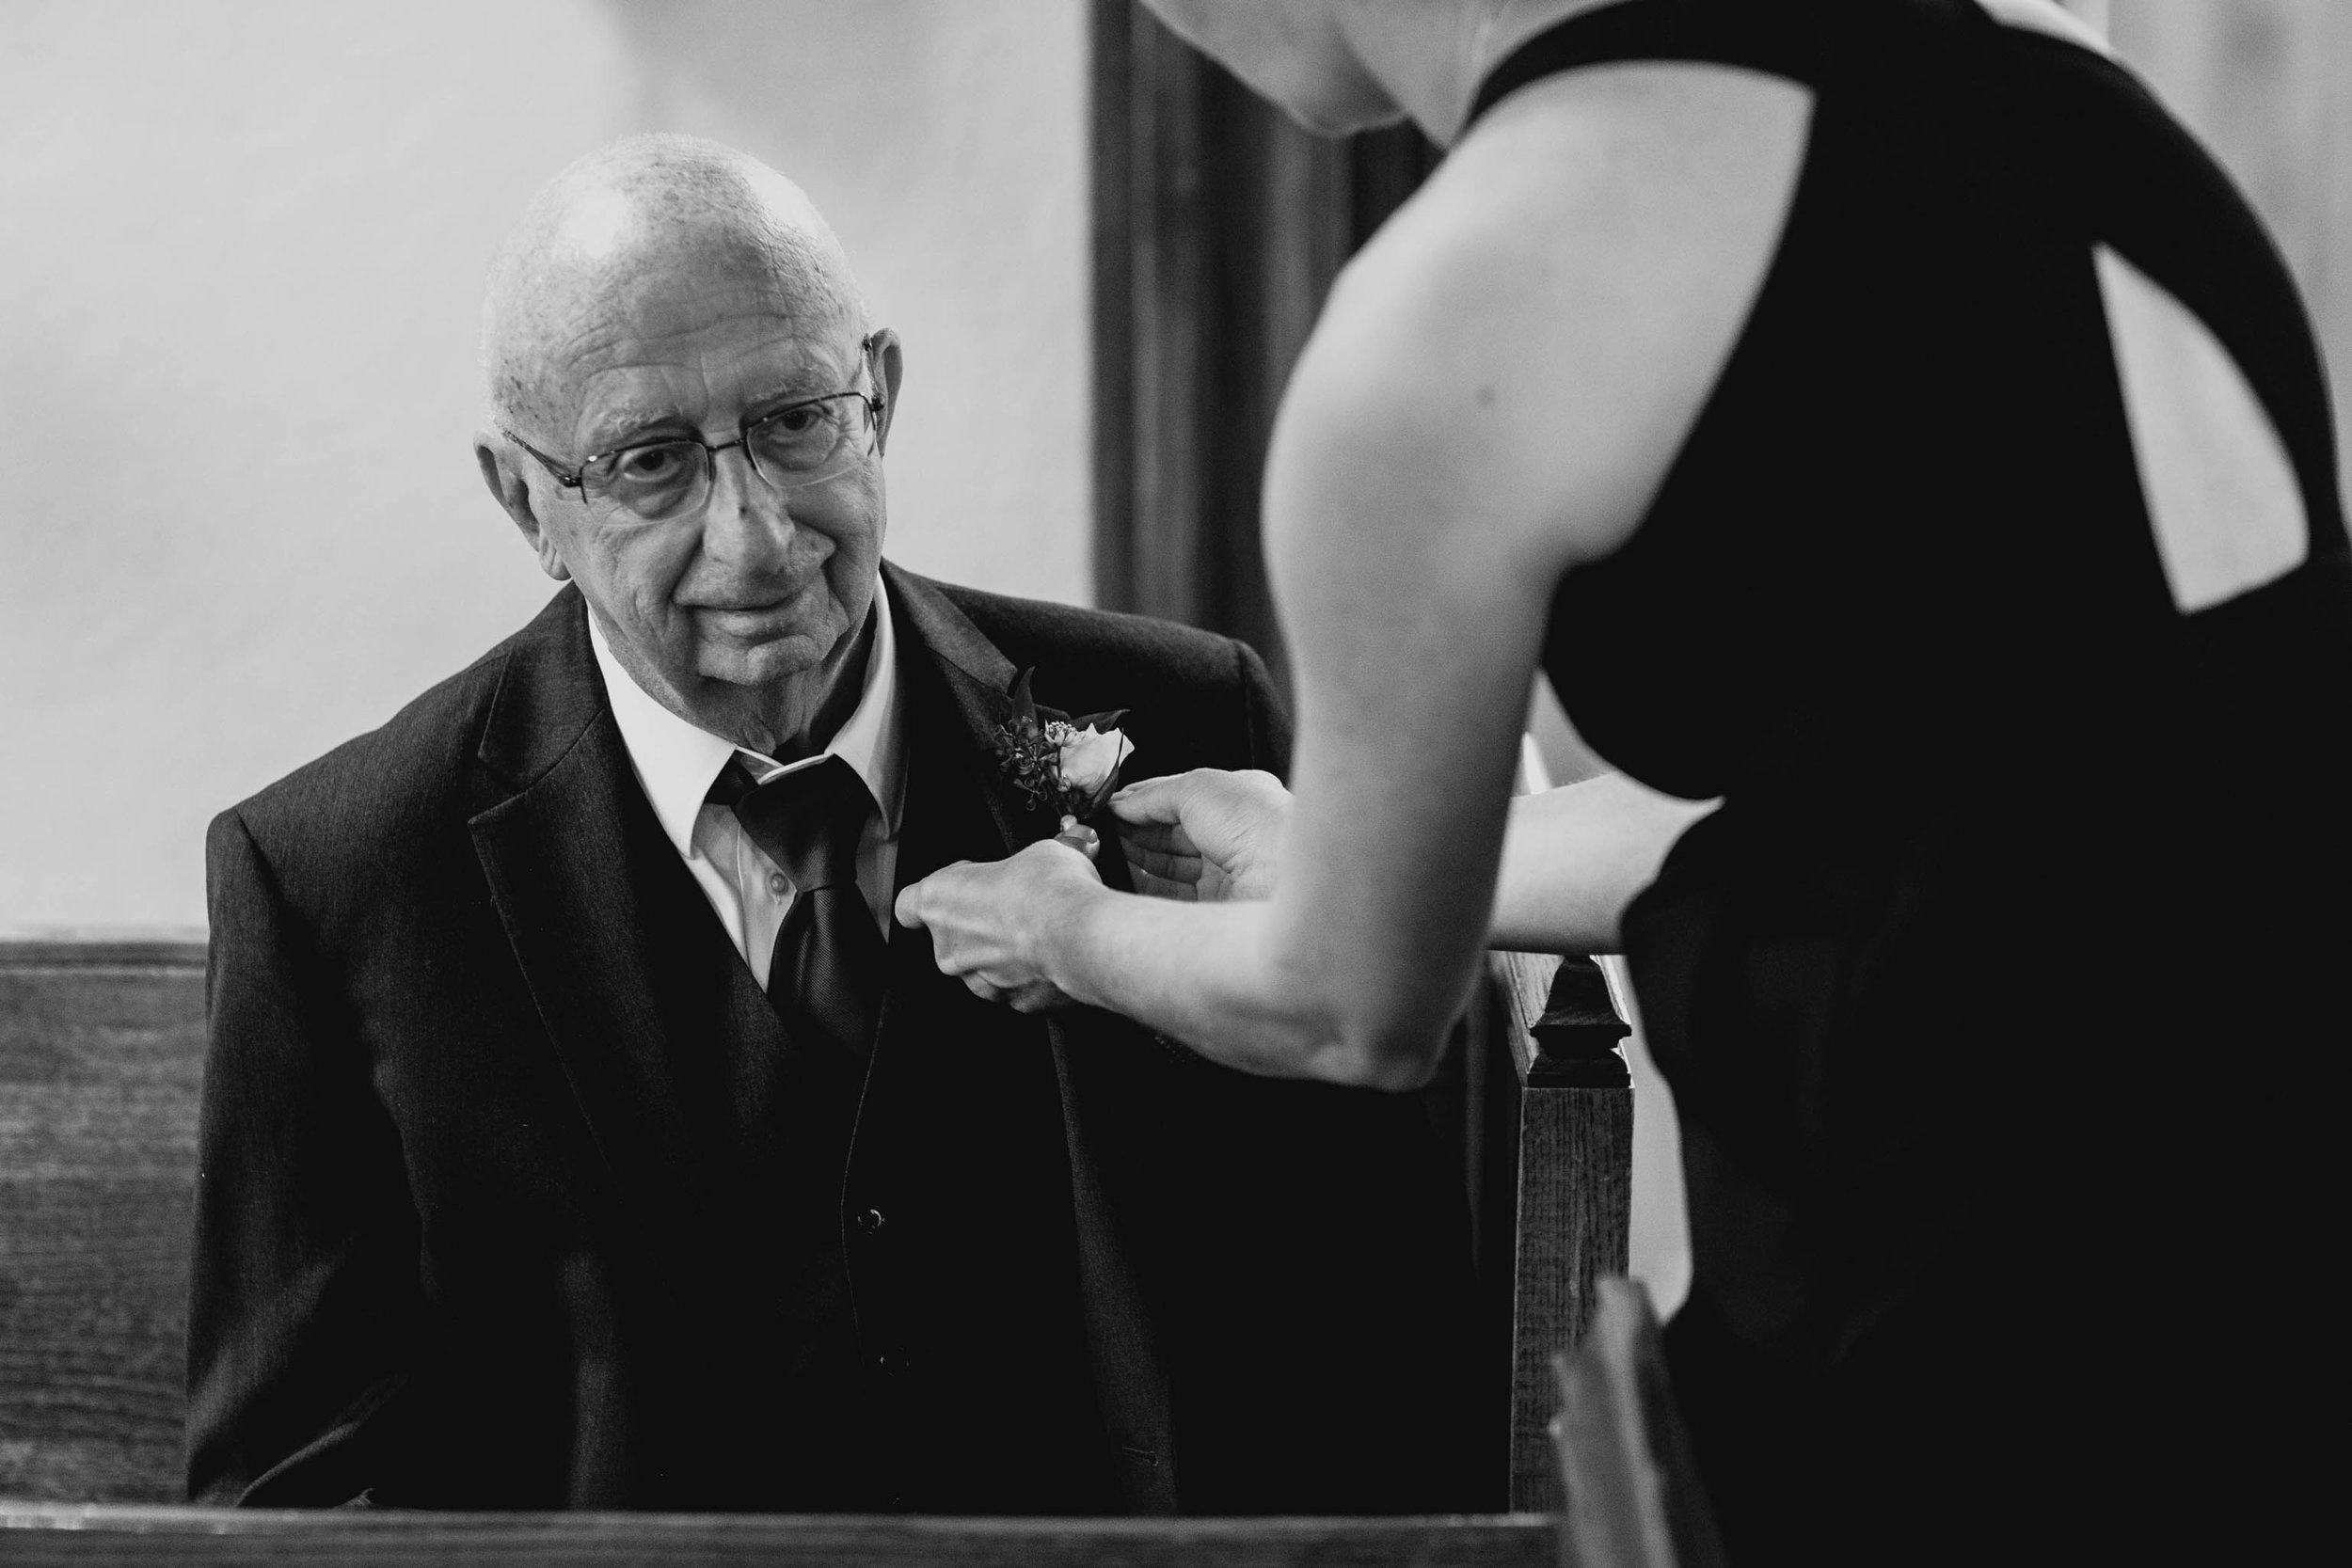 father of the bride having boutonniere pinned on his lapel